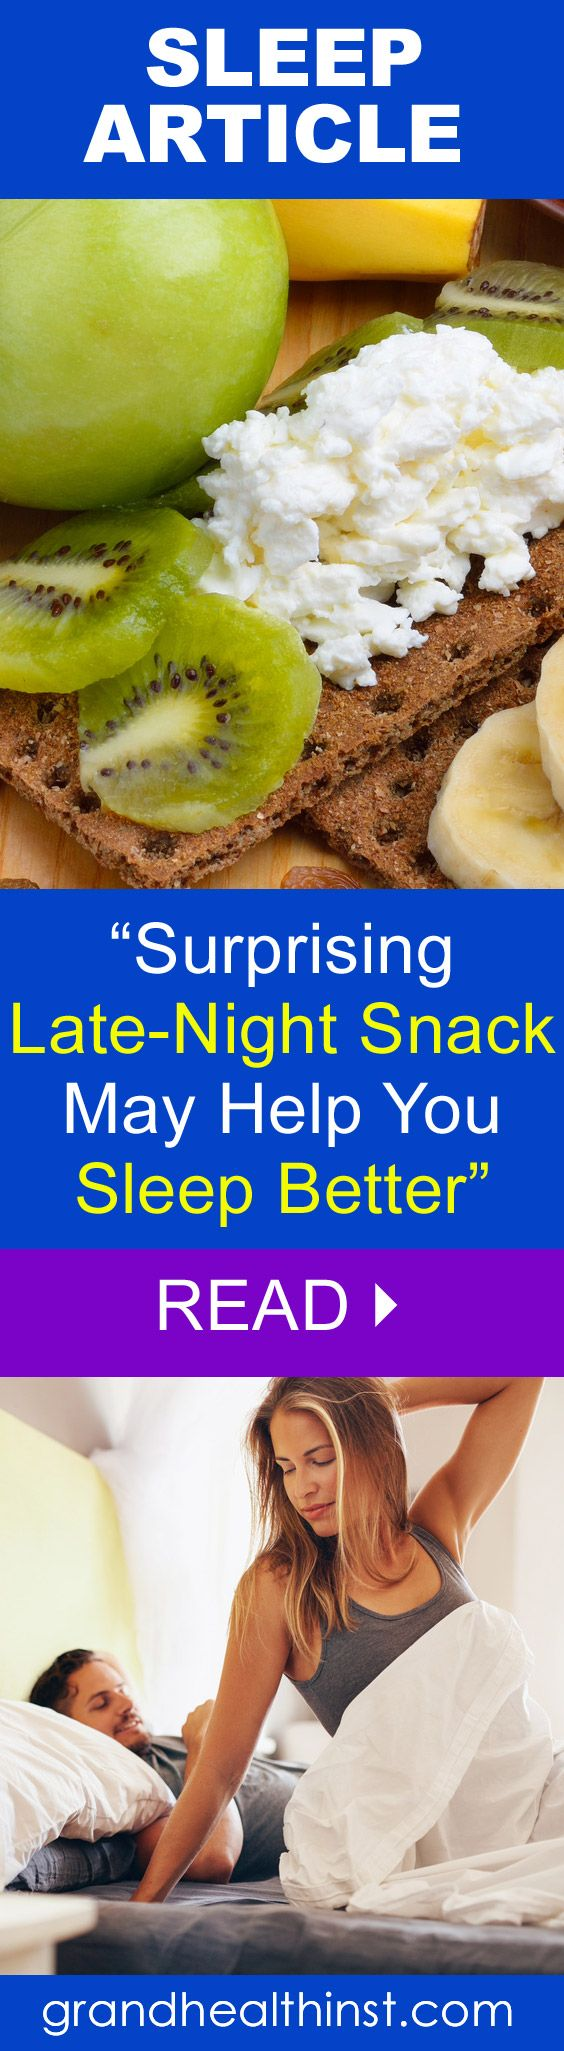 """ARTICLE: """"Surprising Late-Night Snack May Help You Sleep Better"""" READ: http://www.grandhealthinst.com/ Miami Sleep Clinic"""